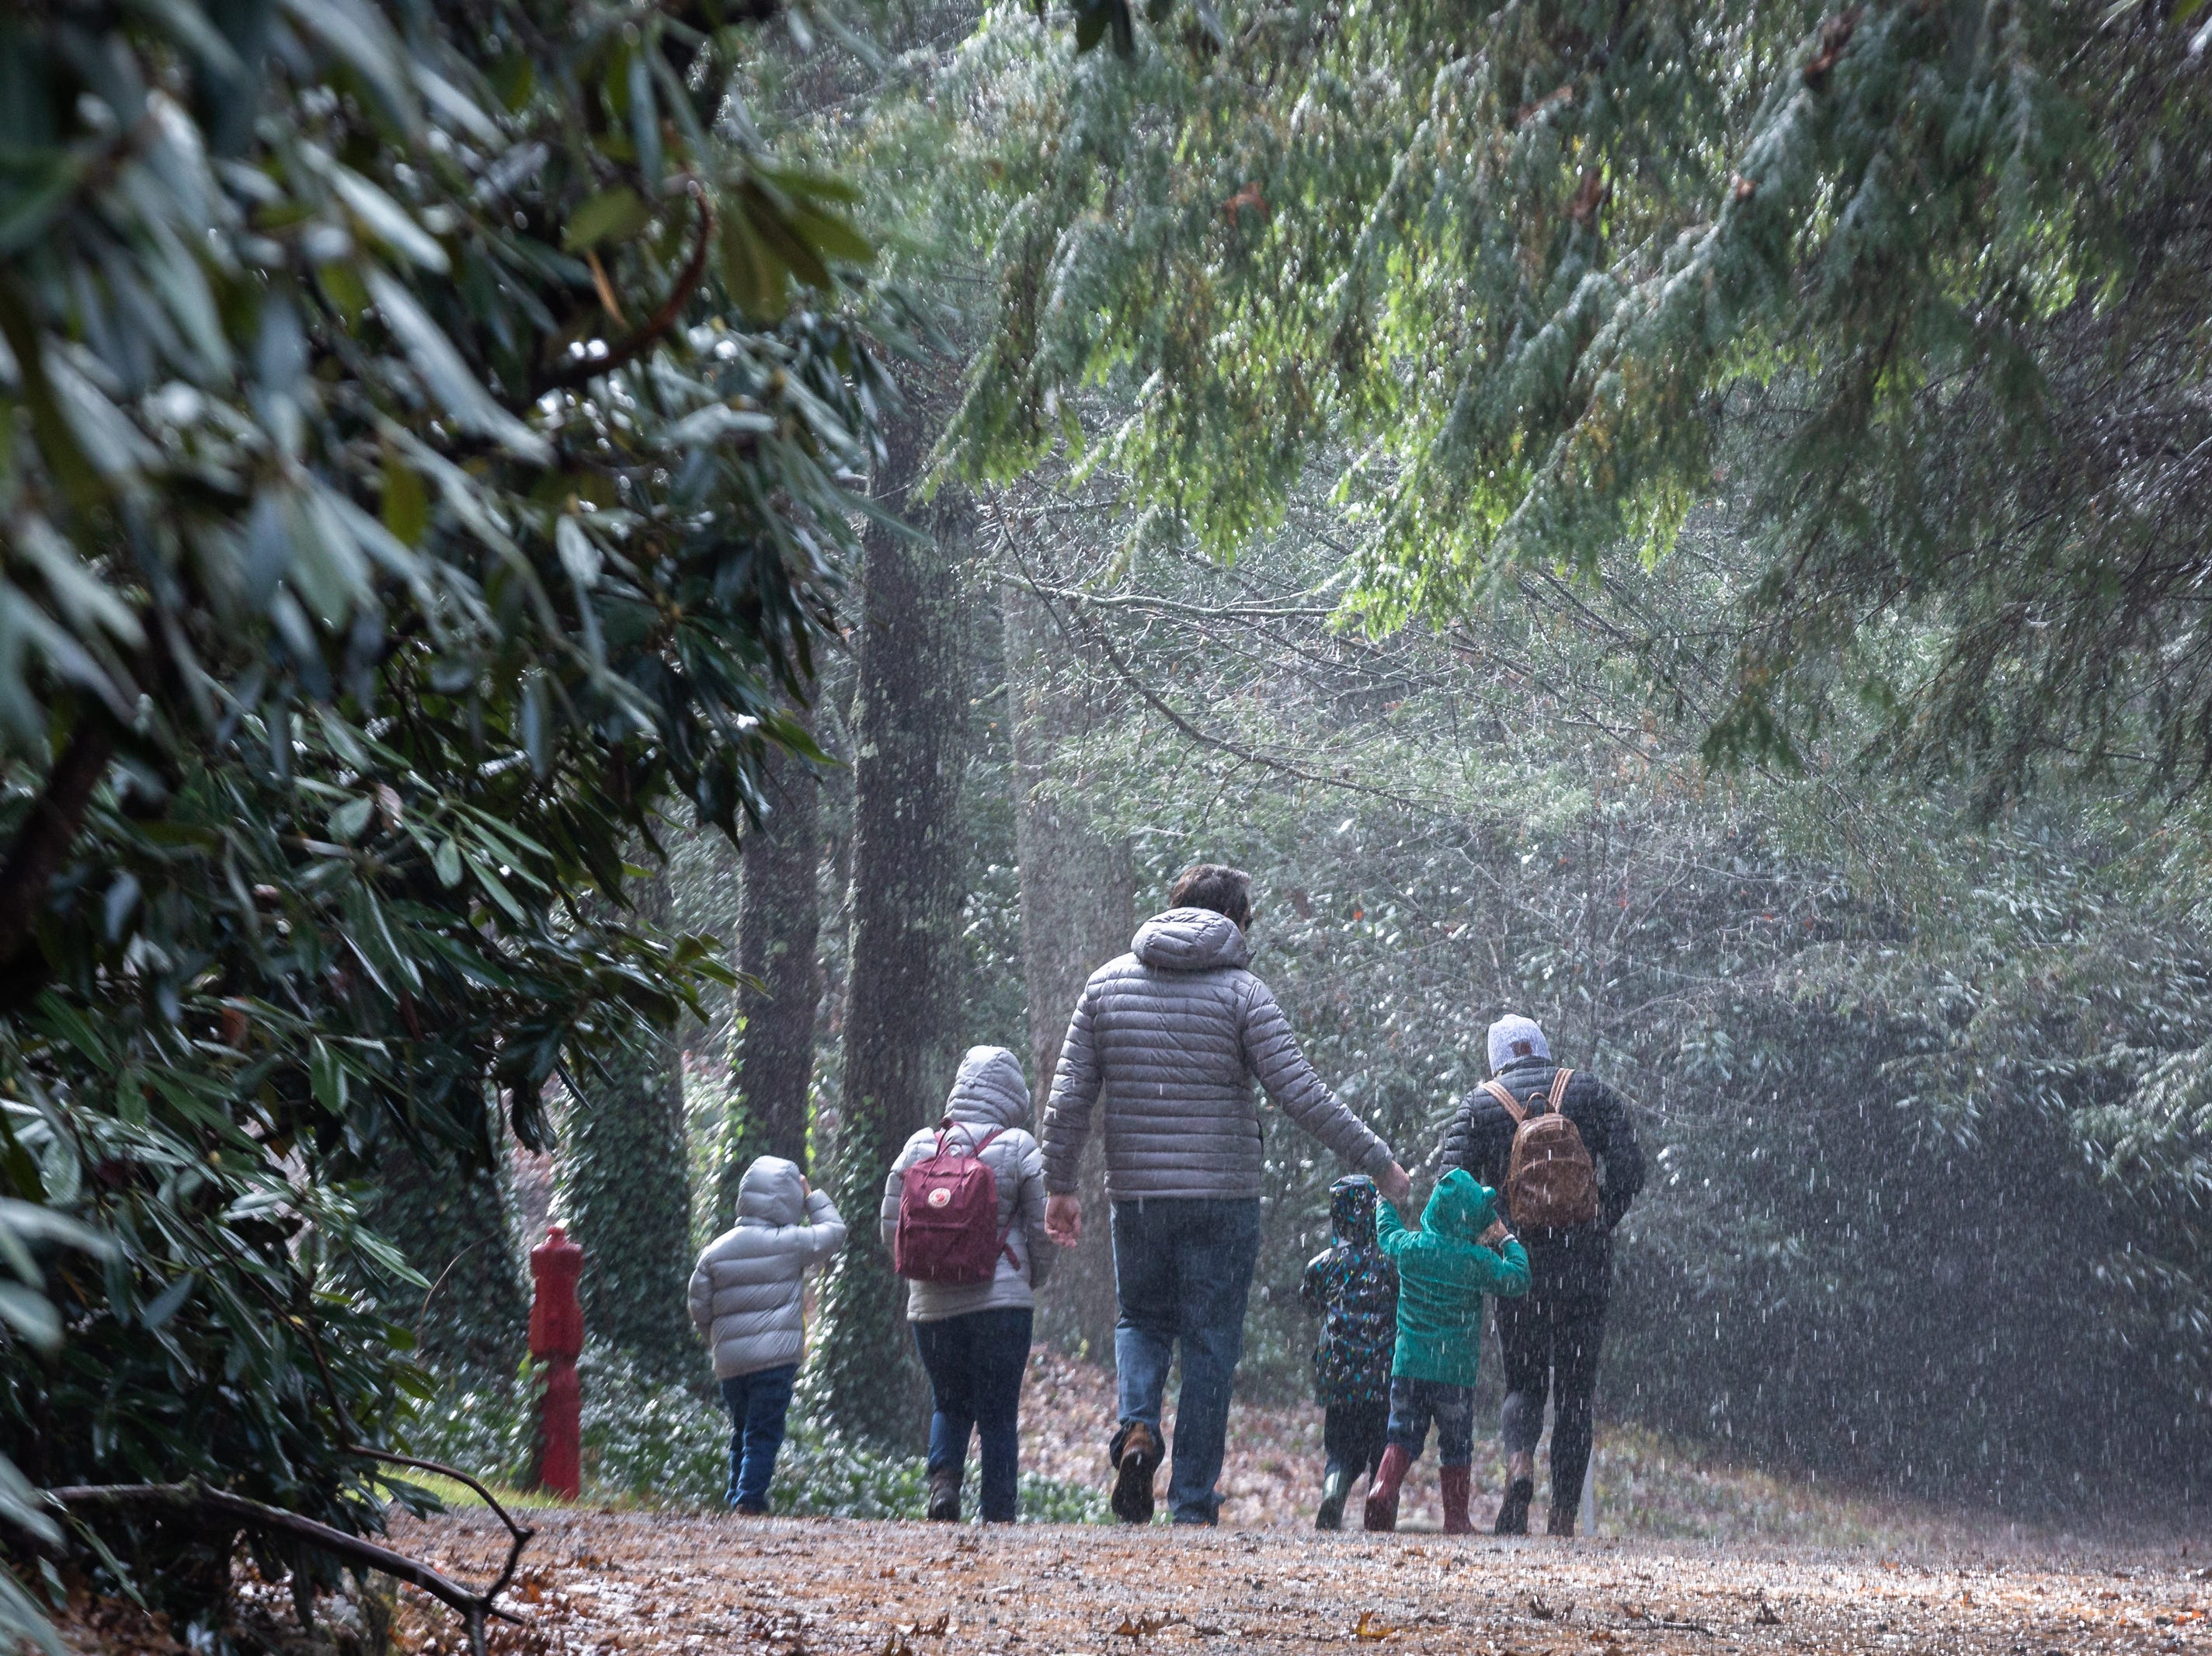 A family walks towards the goat barn at the Carl Sandburg home in Flat Rock where the park celebrated its 50th anniversary Nov. 24, 2018, with their Christmas at Connemara event featuring live music, storytellers and tours of the home.